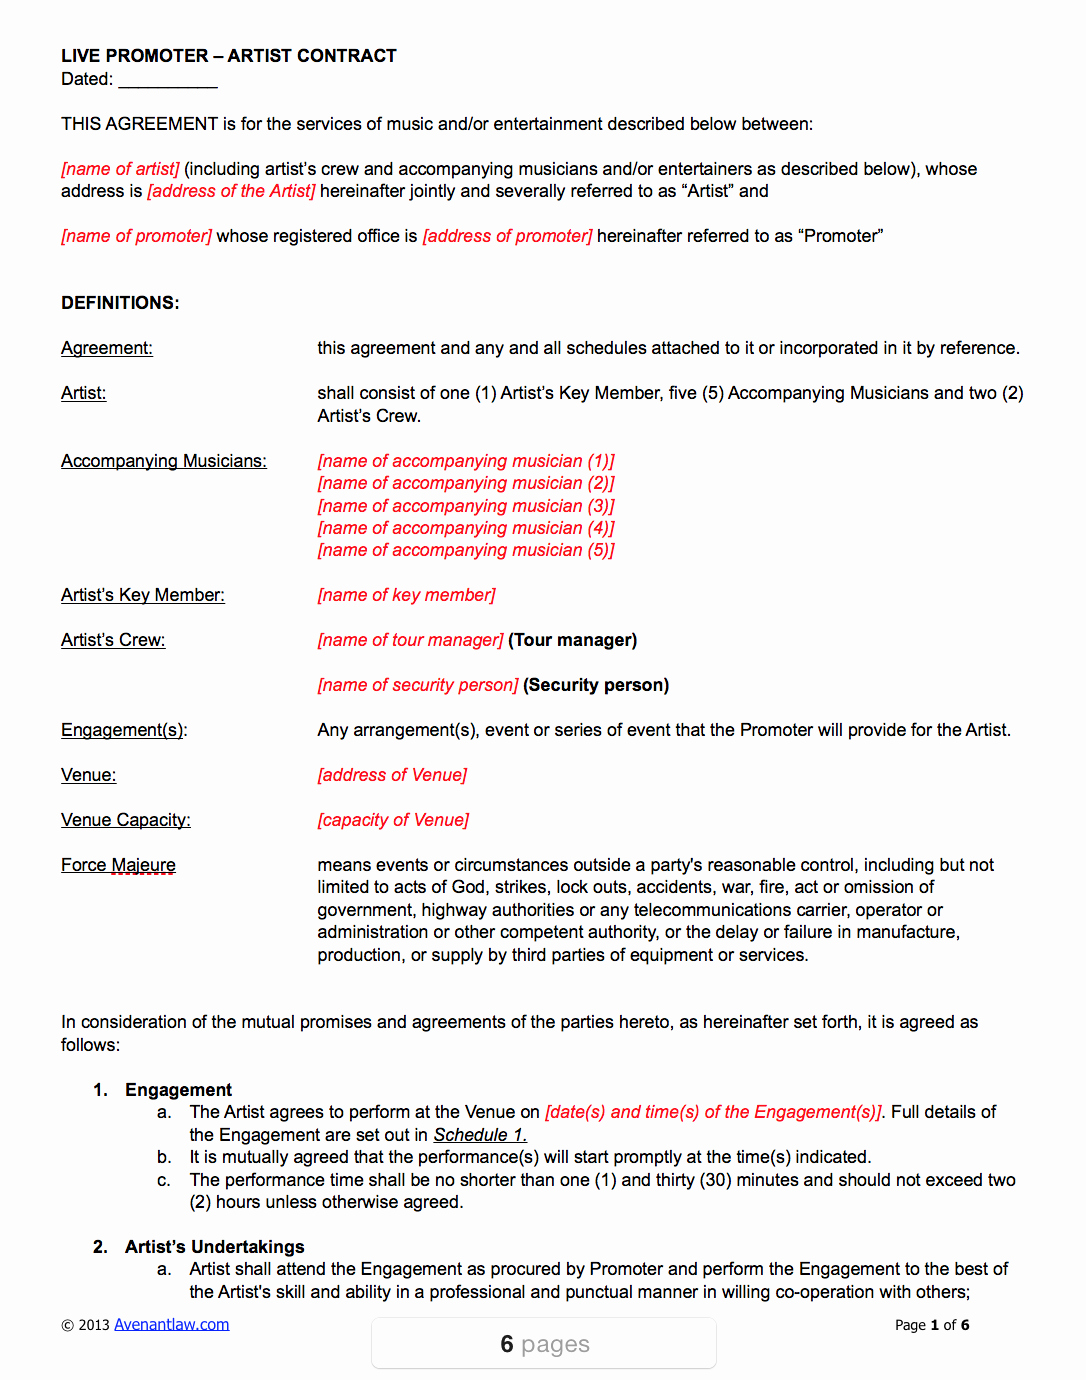 Artist Booking Contract Template Elegant Live Promoter Artist Contract Template